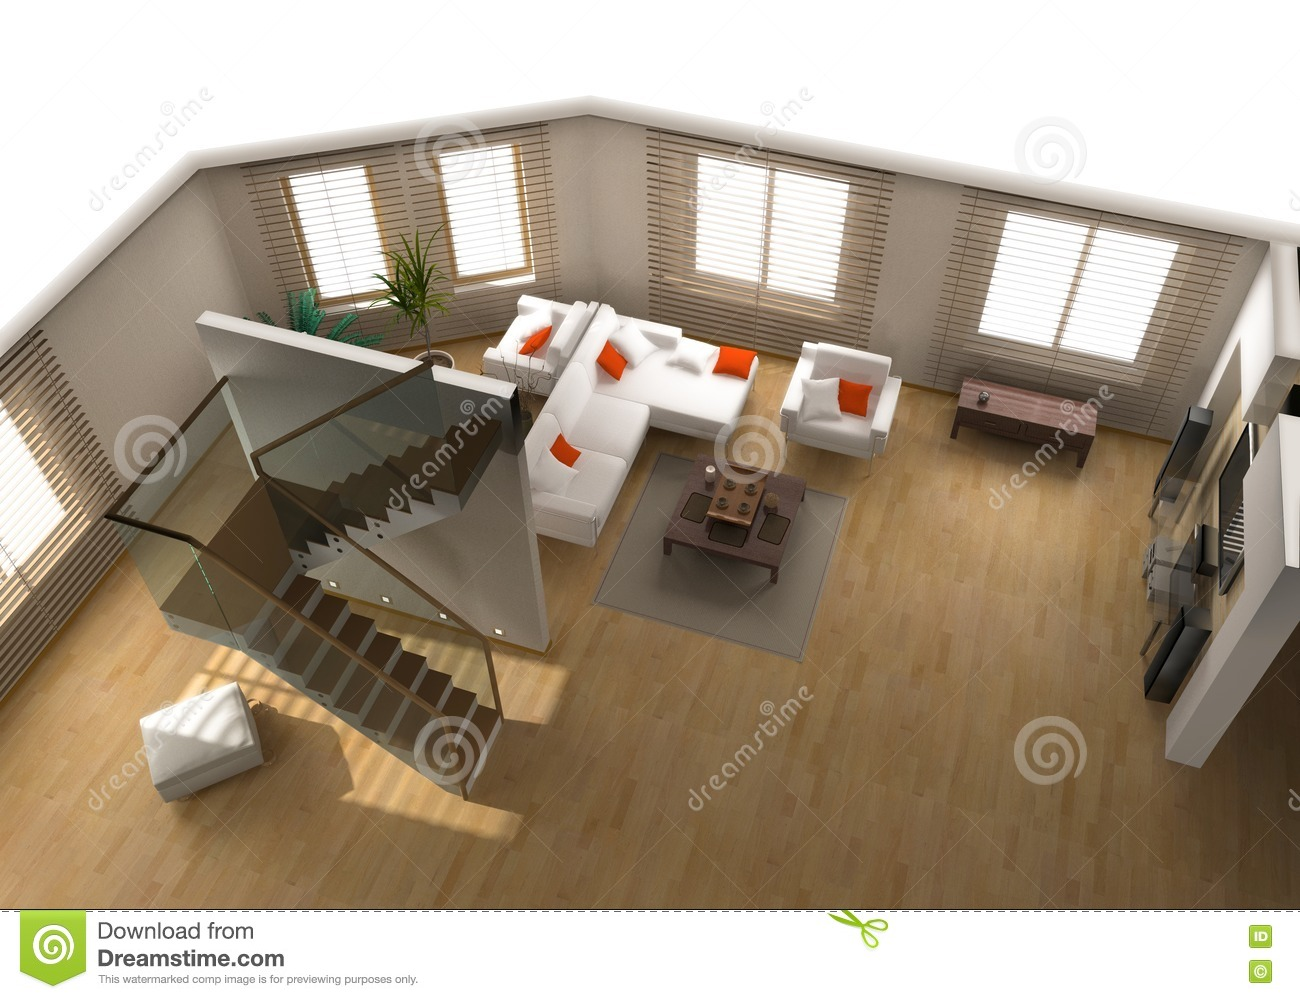 Modern flat interior stock illustration image of plan for Flat interior images